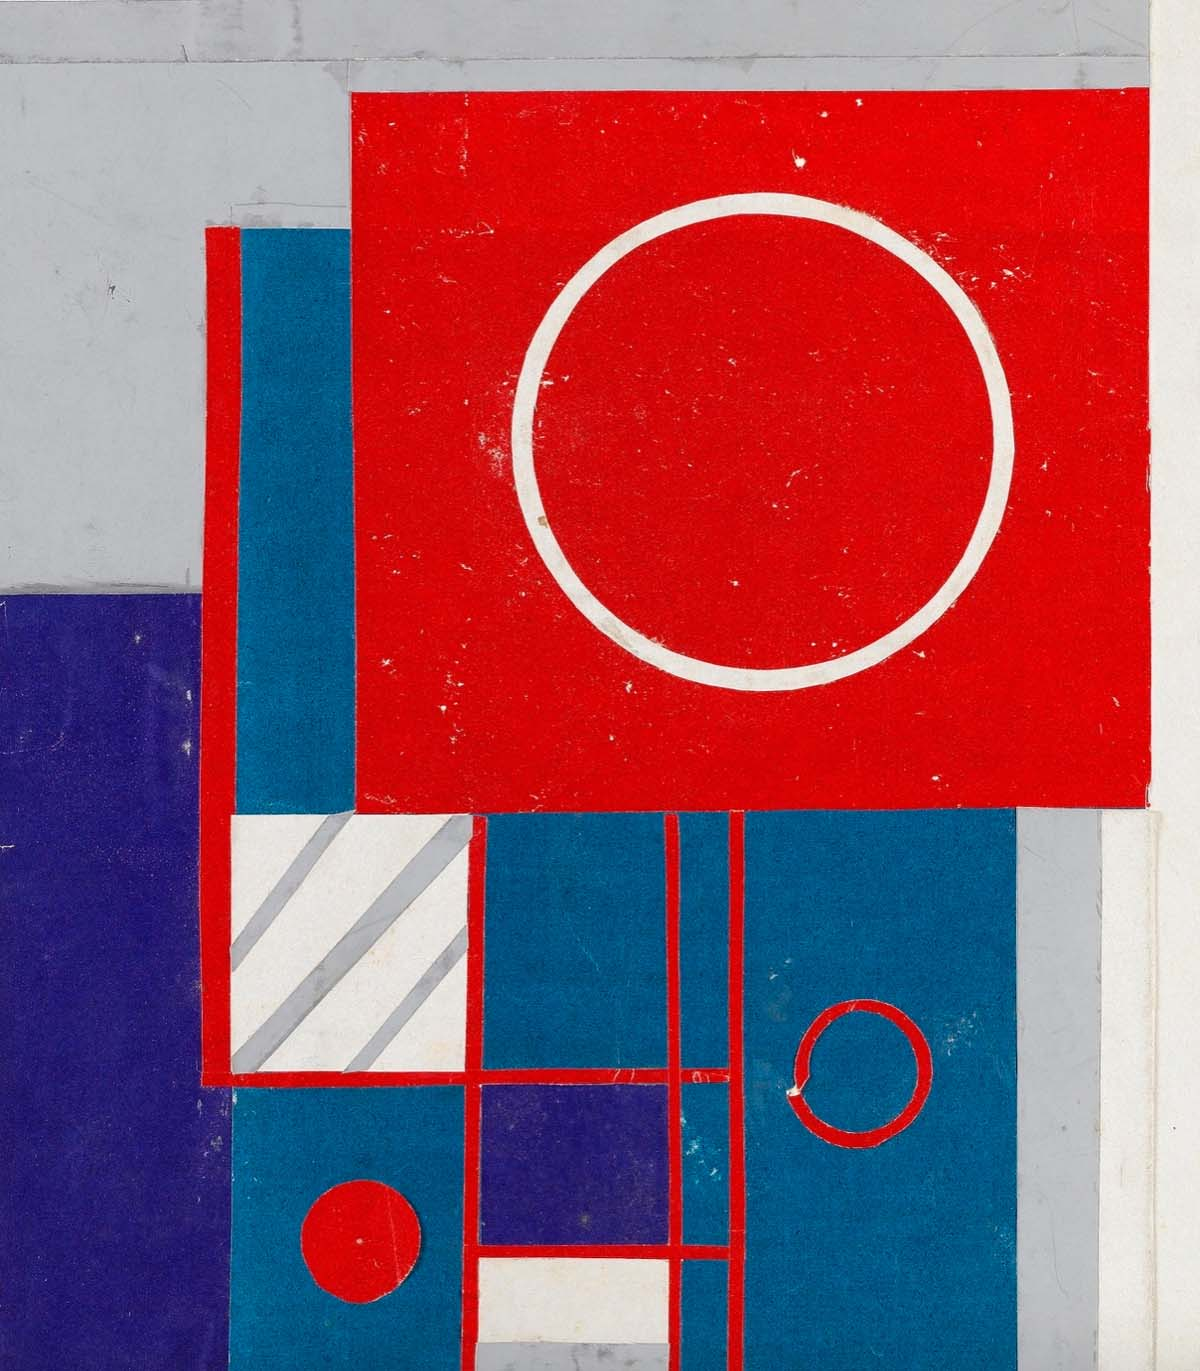 geometric abstract painting with blue and red squares with circles